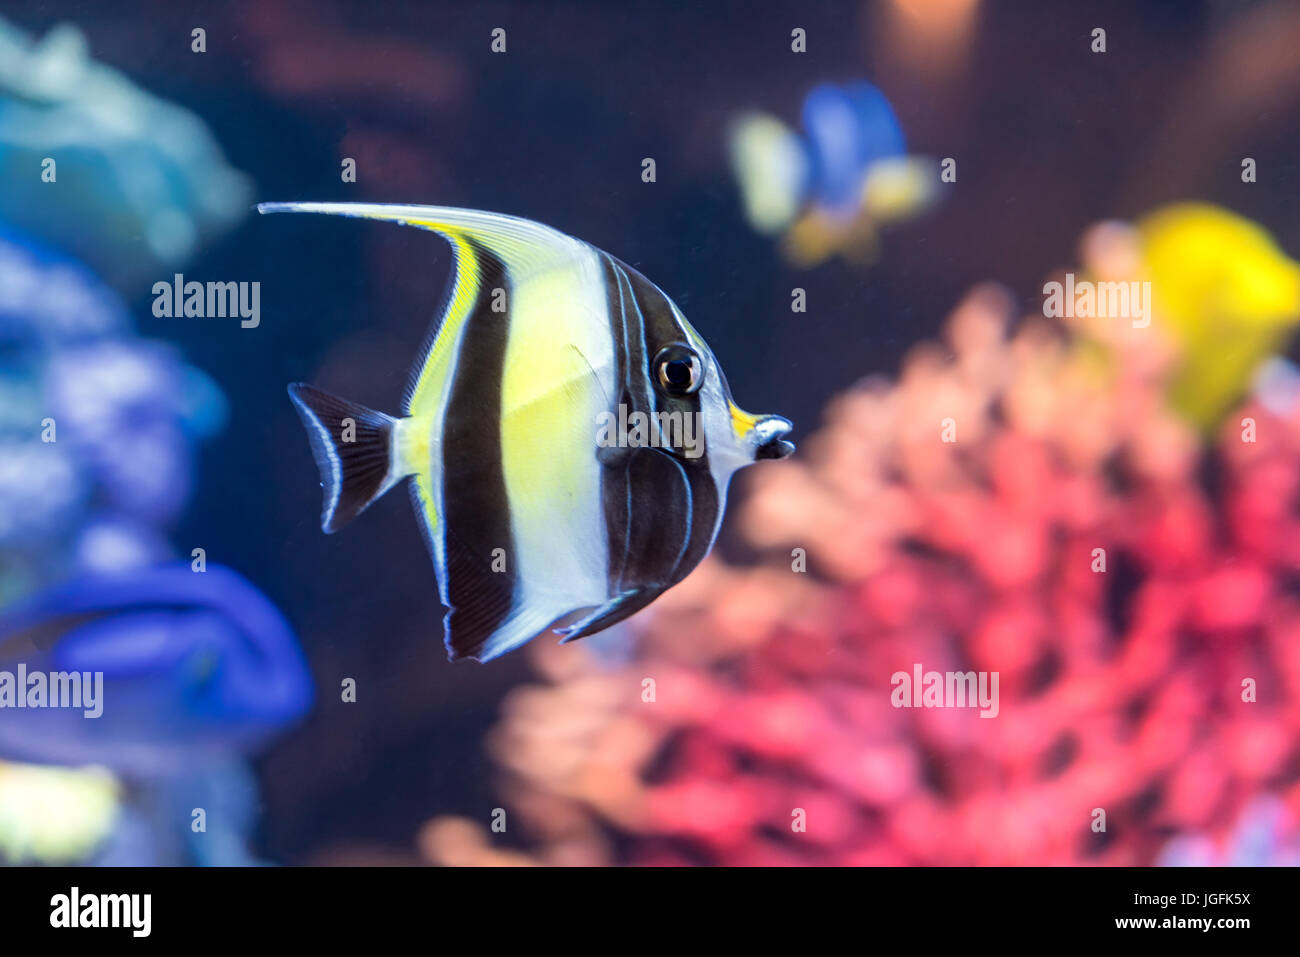 Moorish idol fish with striped pattern on body of yellow, white and black colors swims near stones and colorful - Stock Image